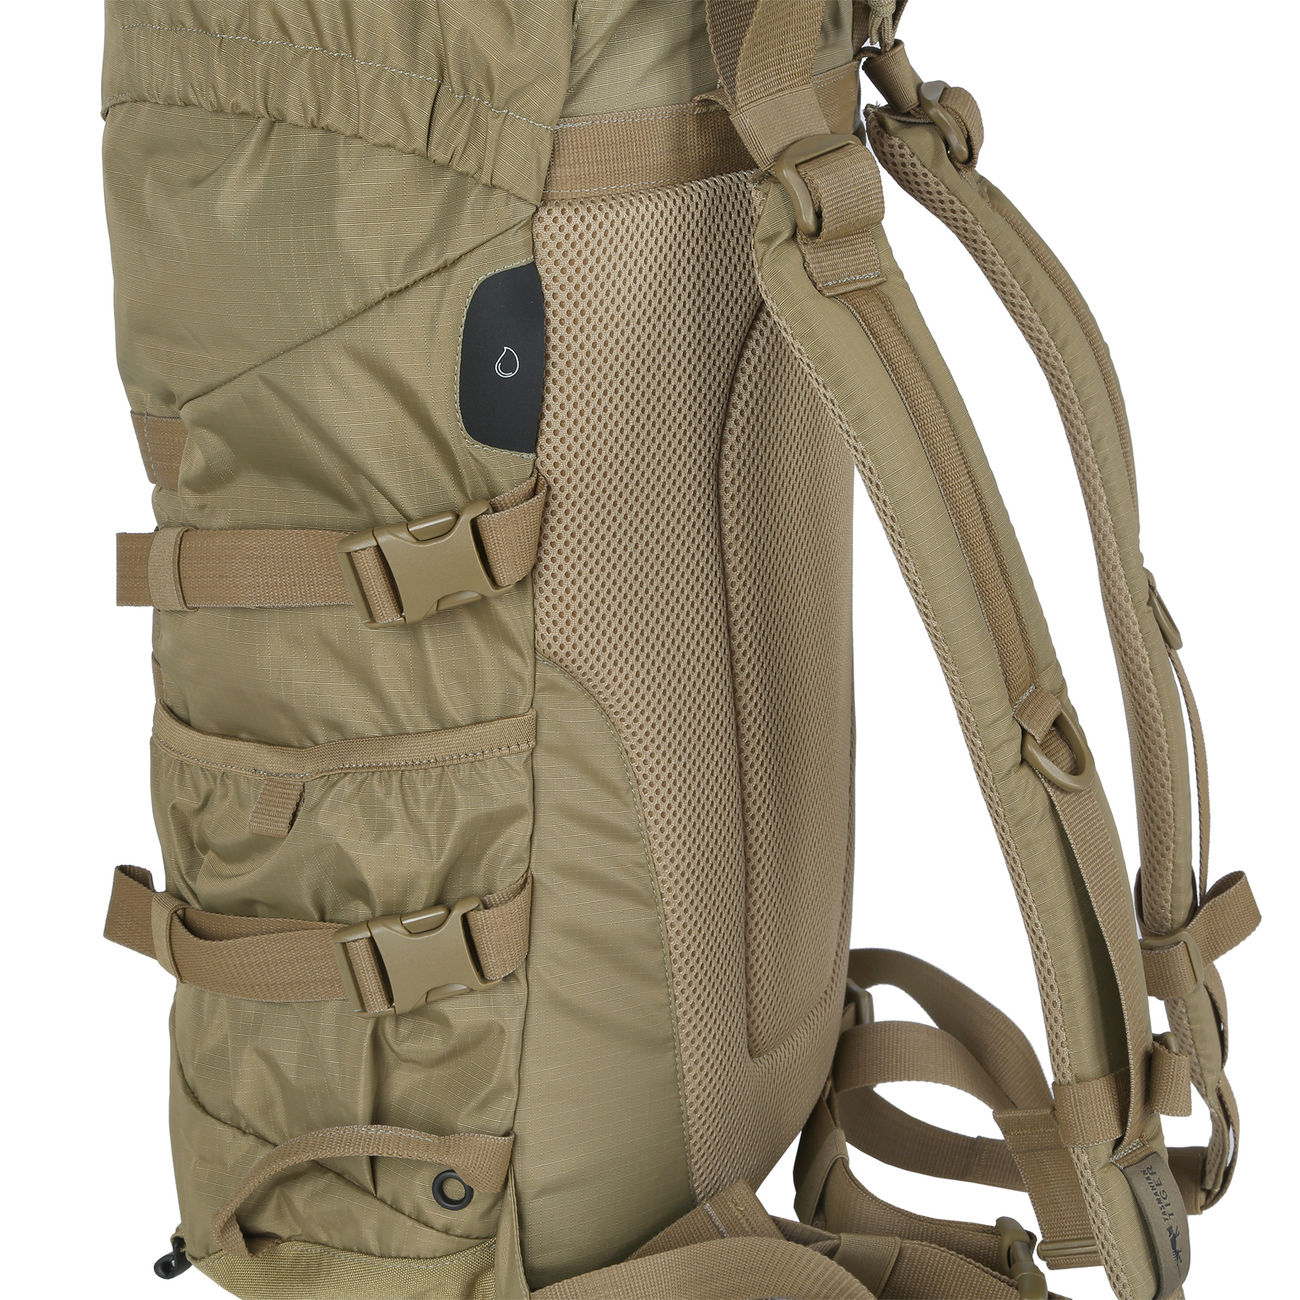 TT Rucksack Trooper Light Pack 35 khaki 8